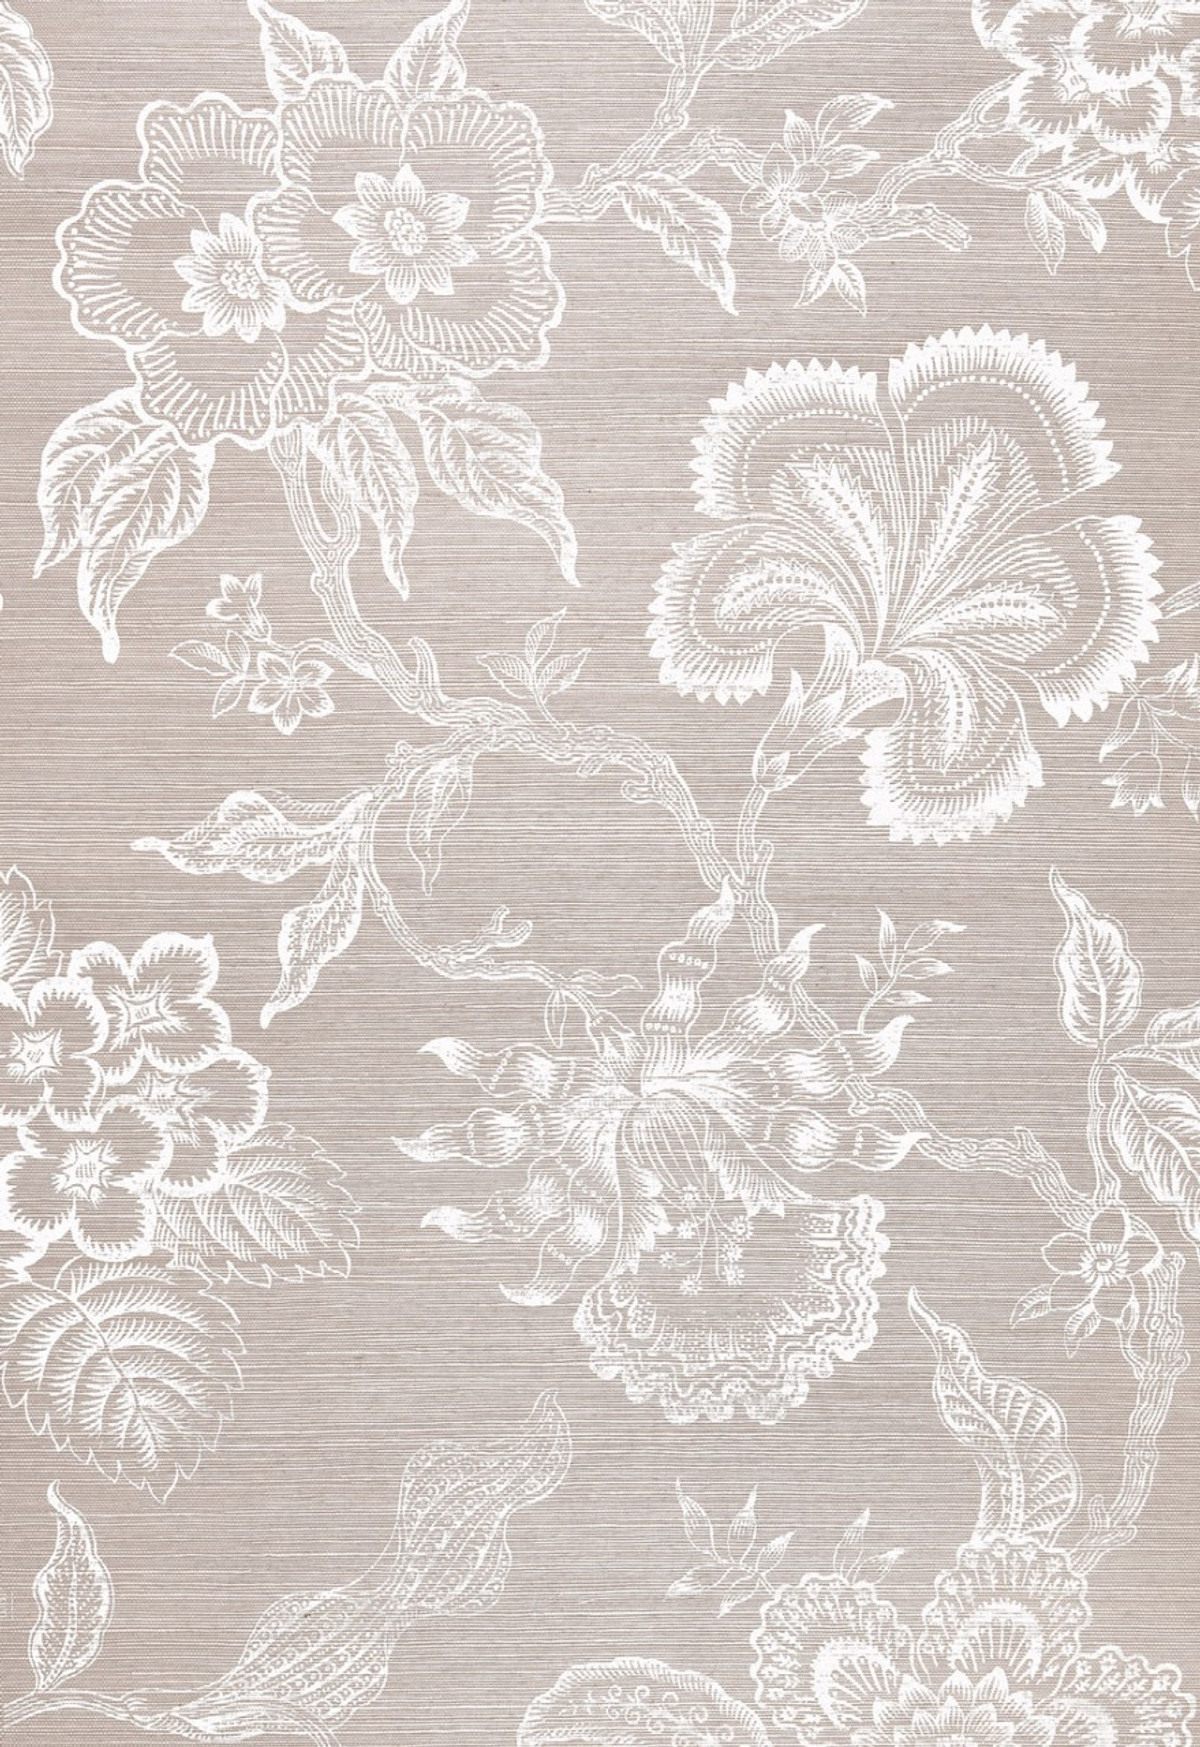 Celerie Kemble For Schumacher Hothouse Flowers Sisal Haze Chalk Wallpaper Sold Priced By